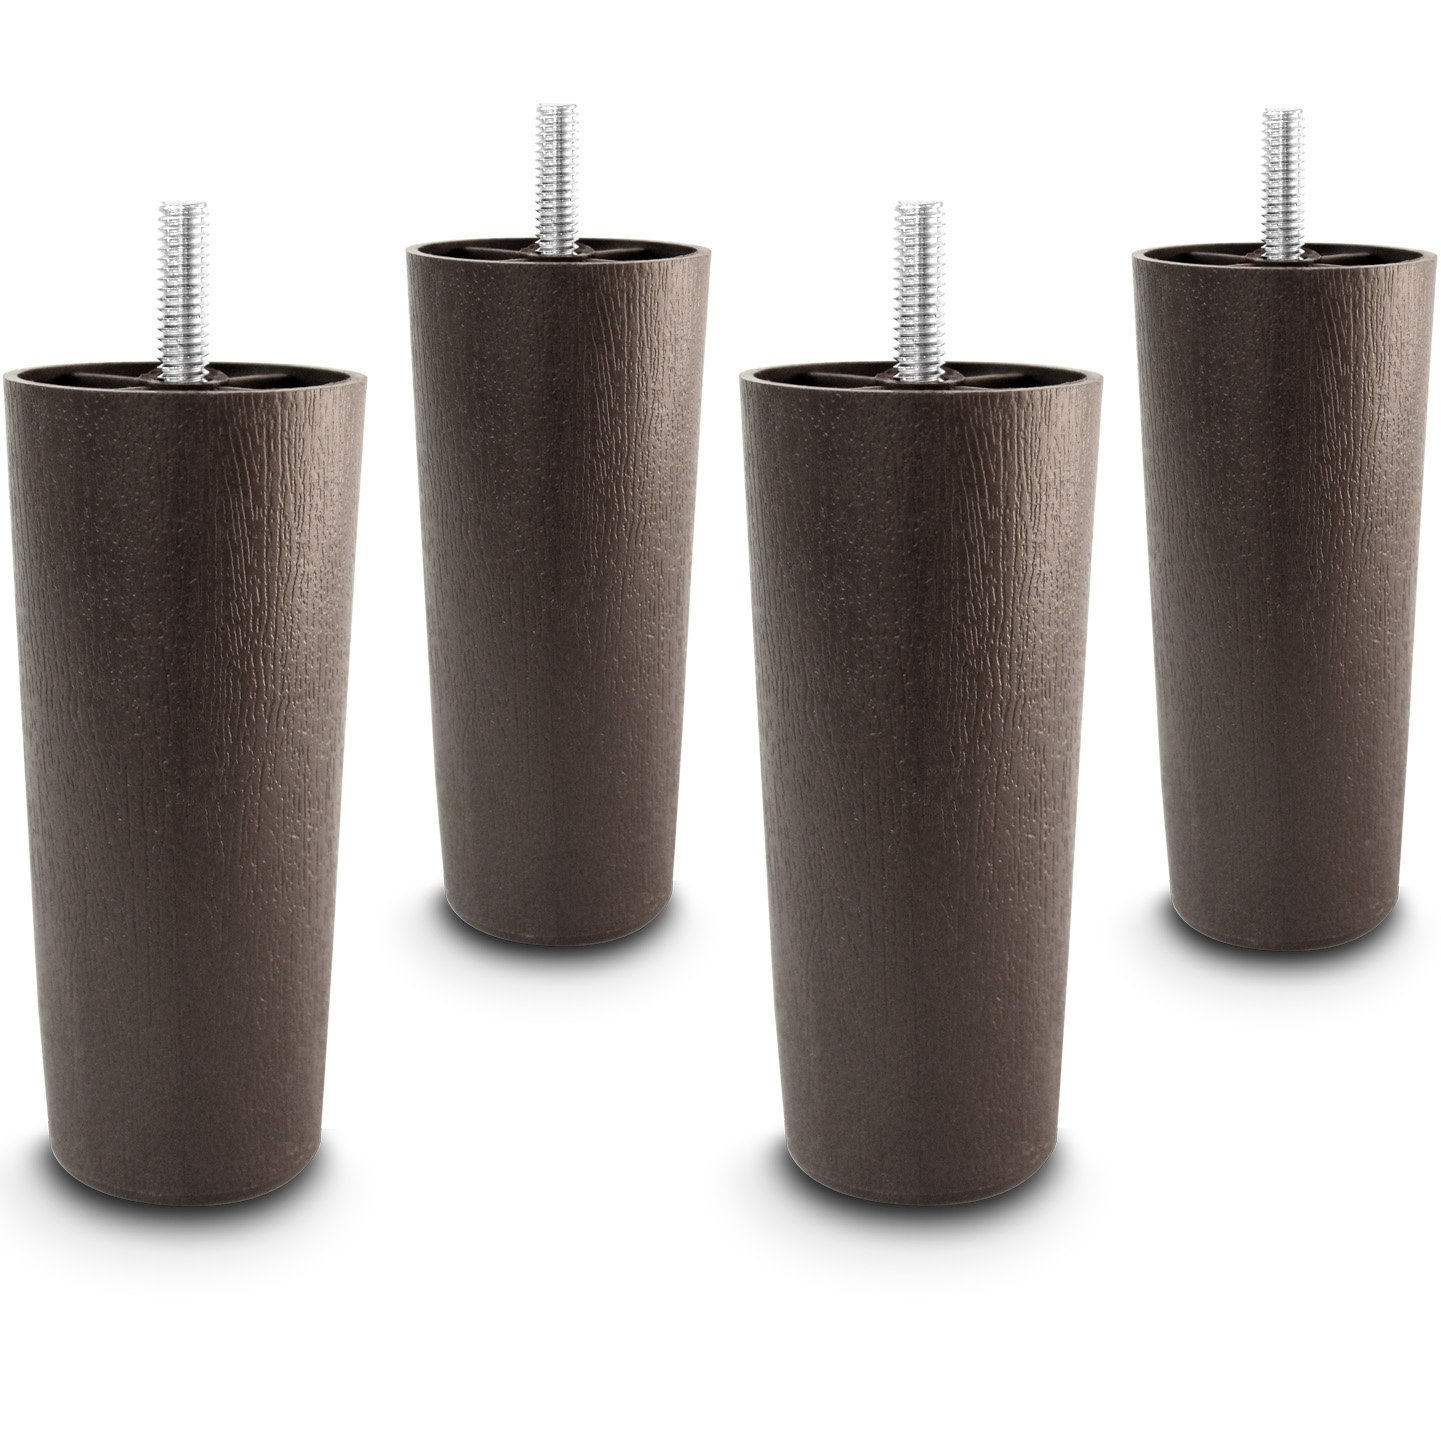 Choice Parts - 5 Inch Dark Walnut Plastic Tapered Sofa Legs, Set of 4 - 100% Satisfaction Guaranteed by Choice Parts